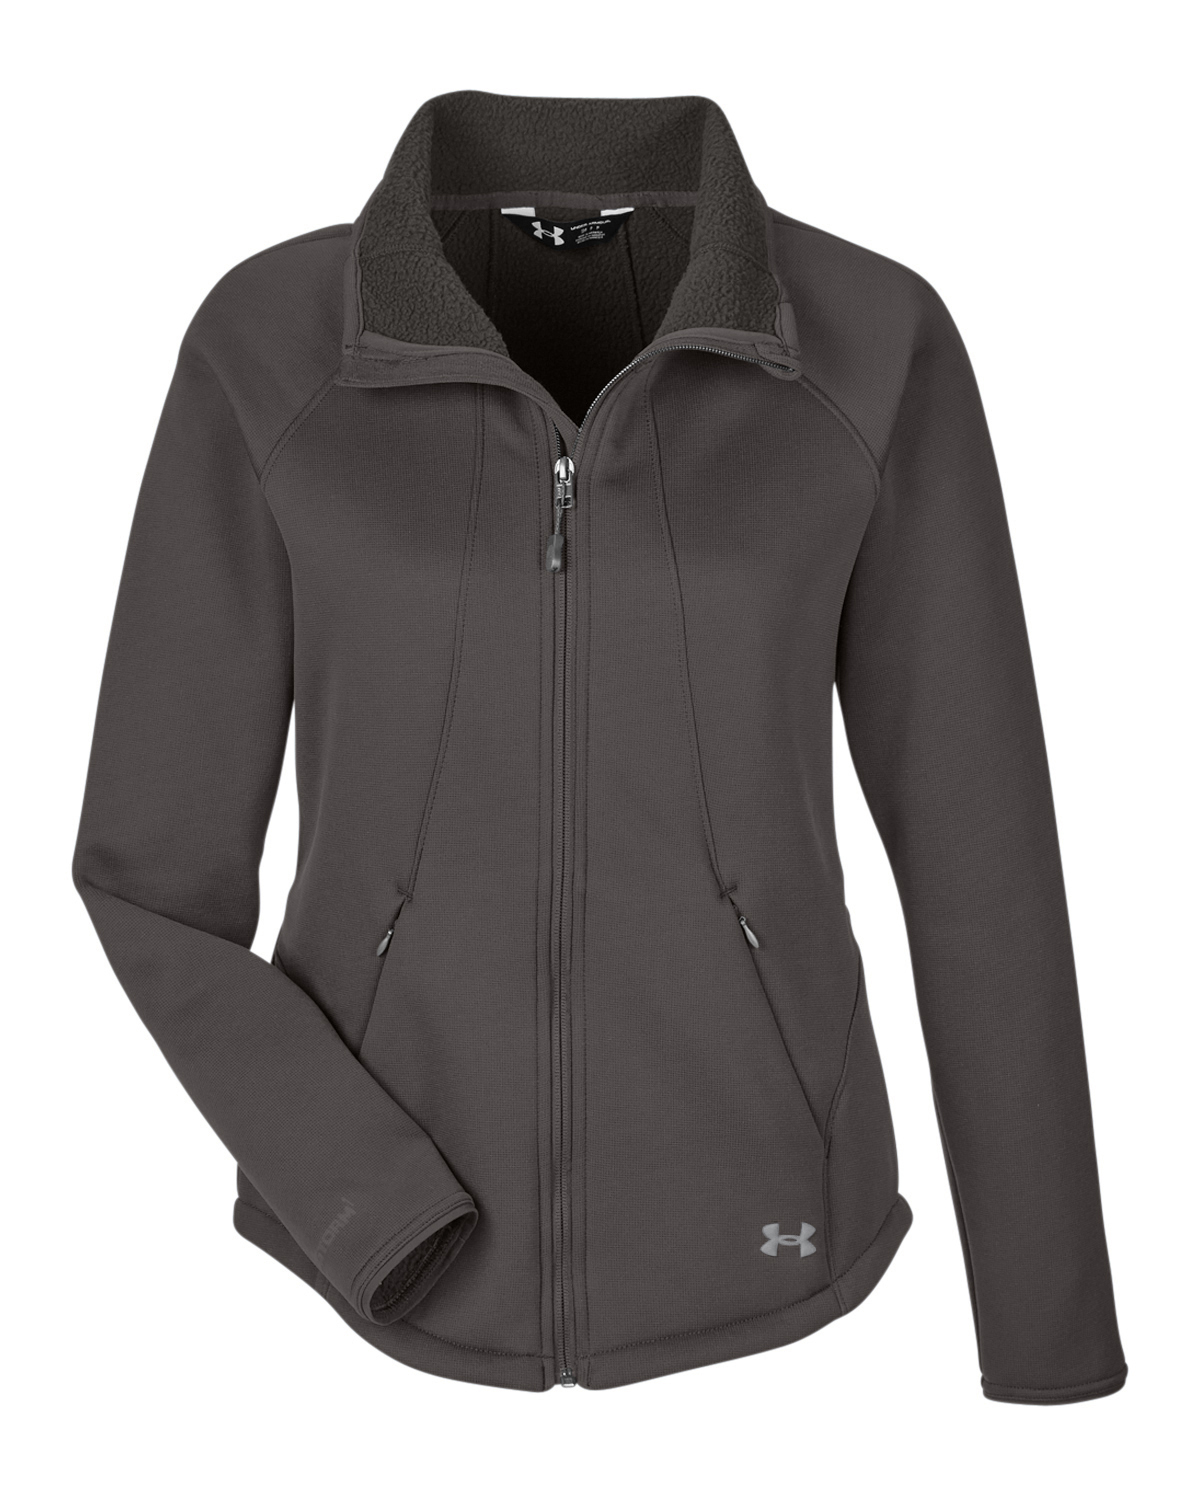 Under Armour 1296899 - Ladies' UA Extreme Coldgear Jacket